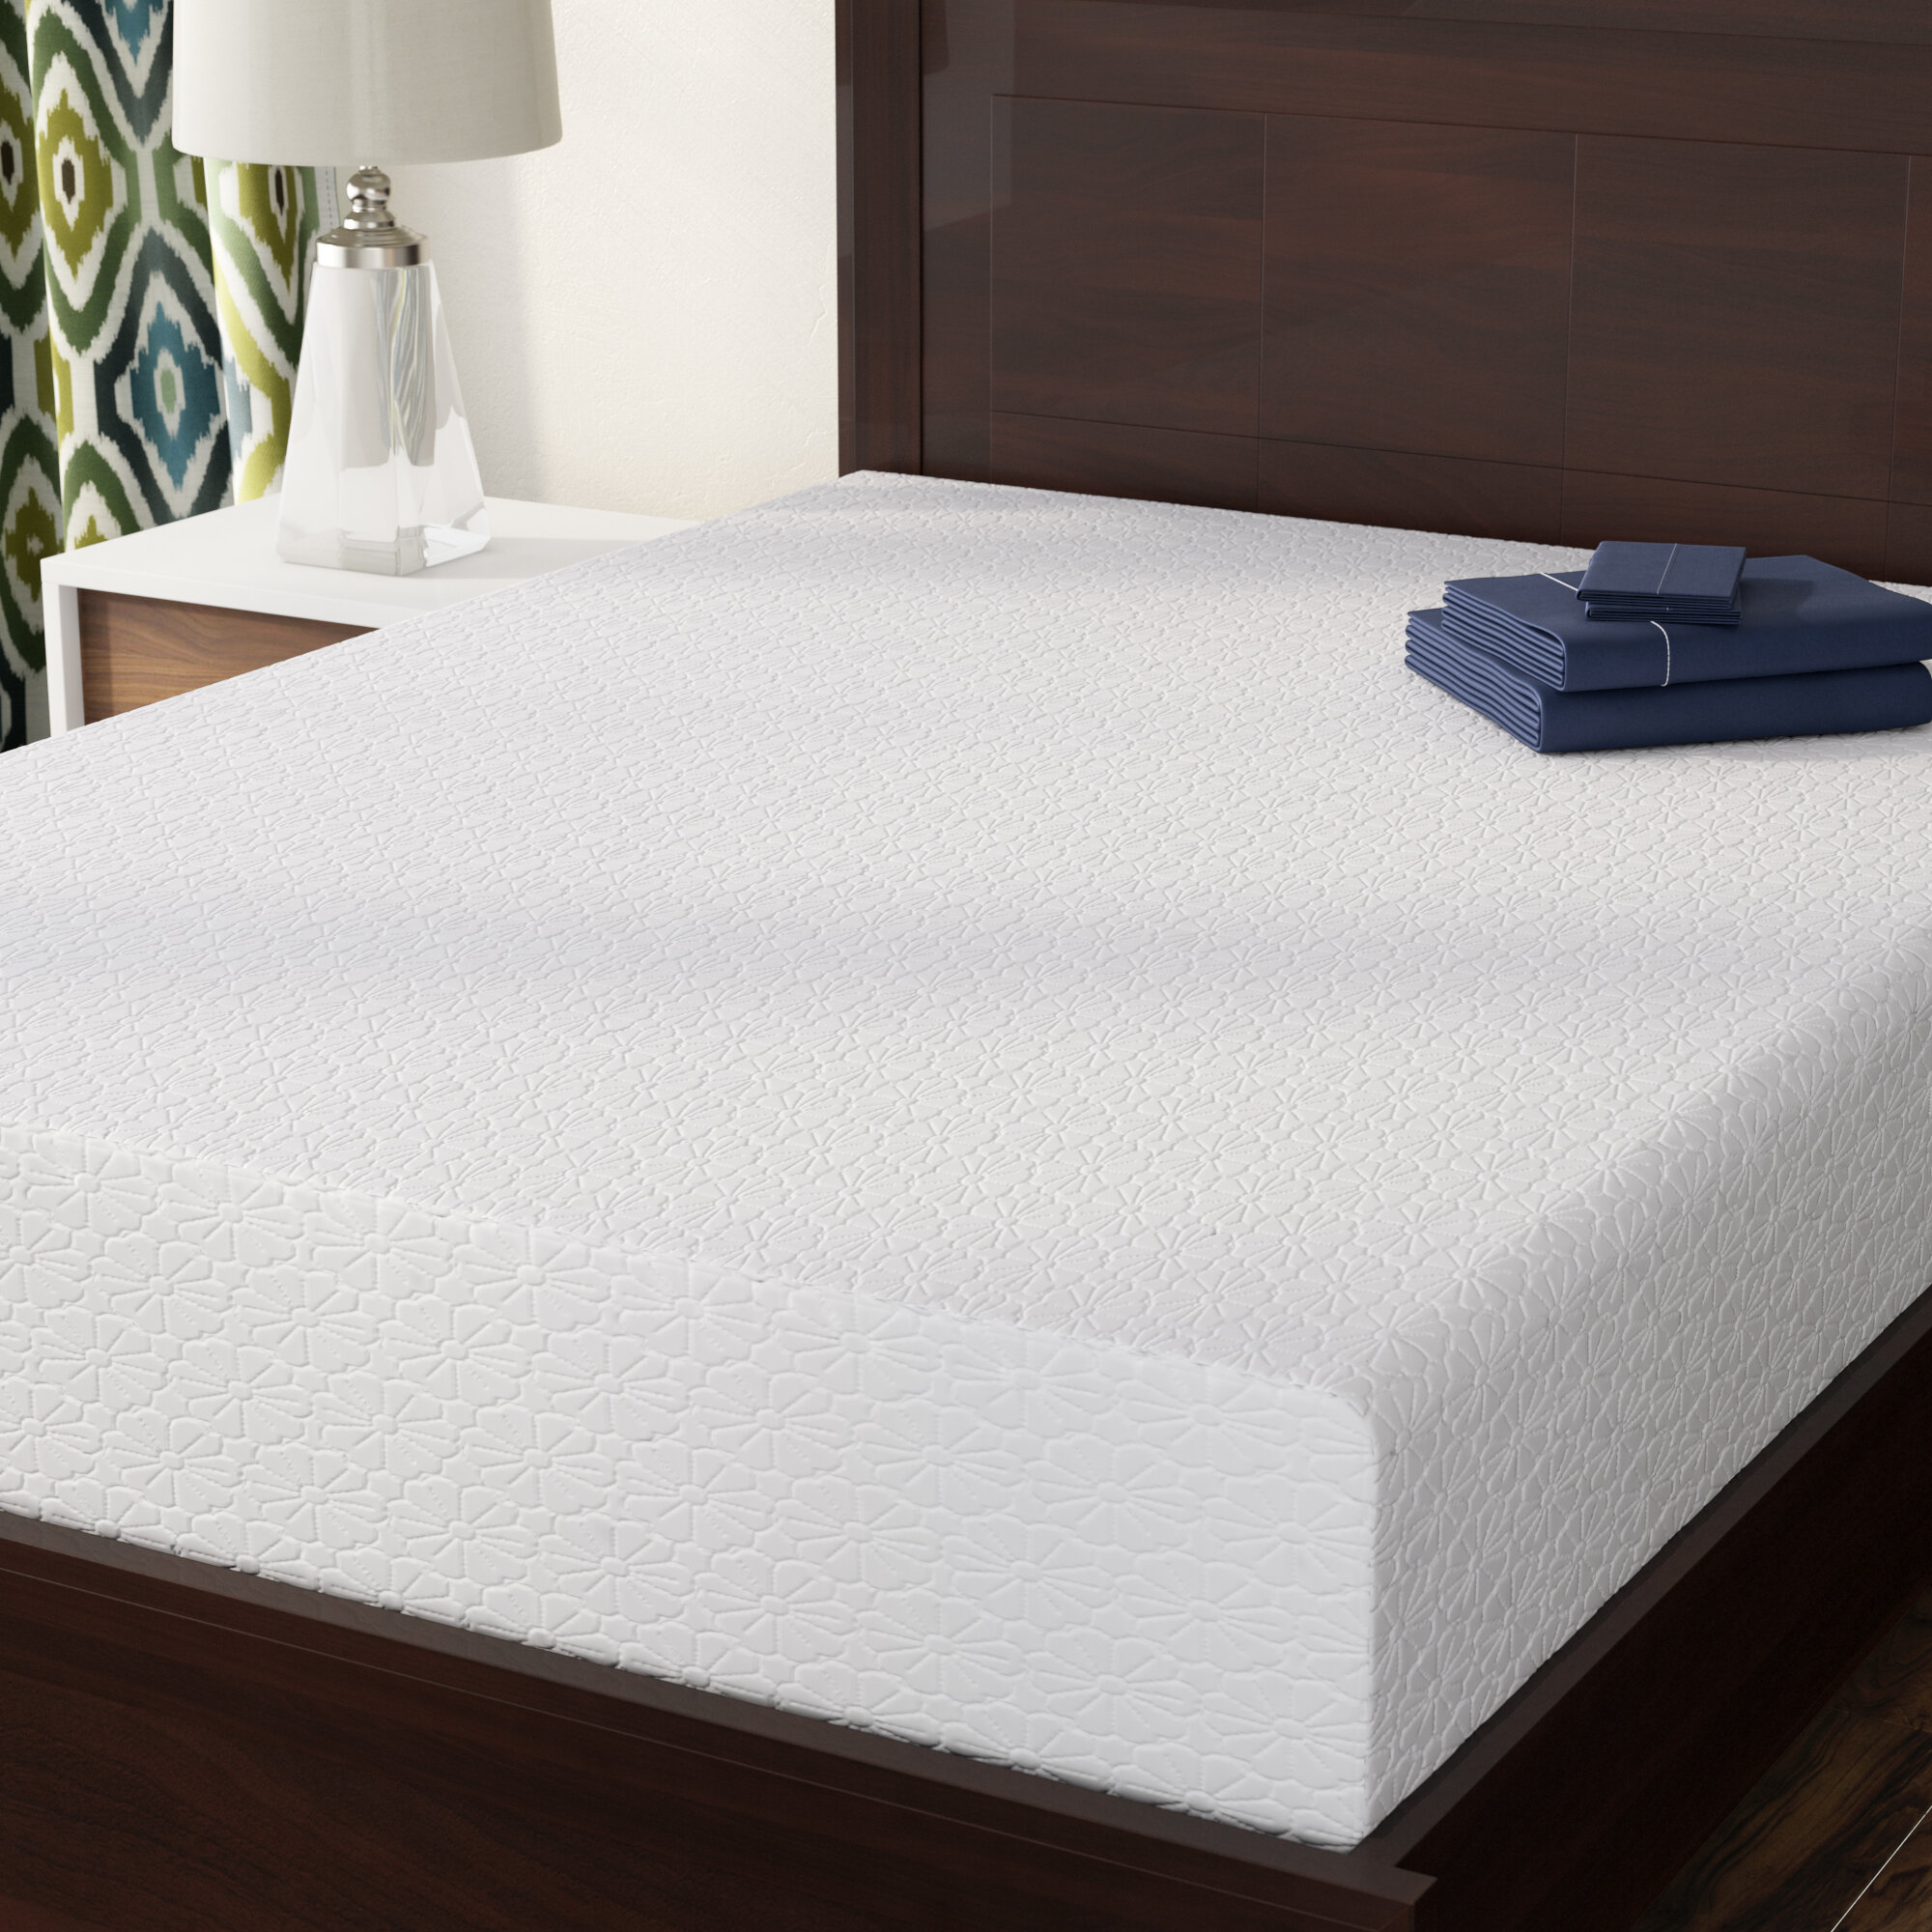 hypnia king mattress mattresses foam memory size